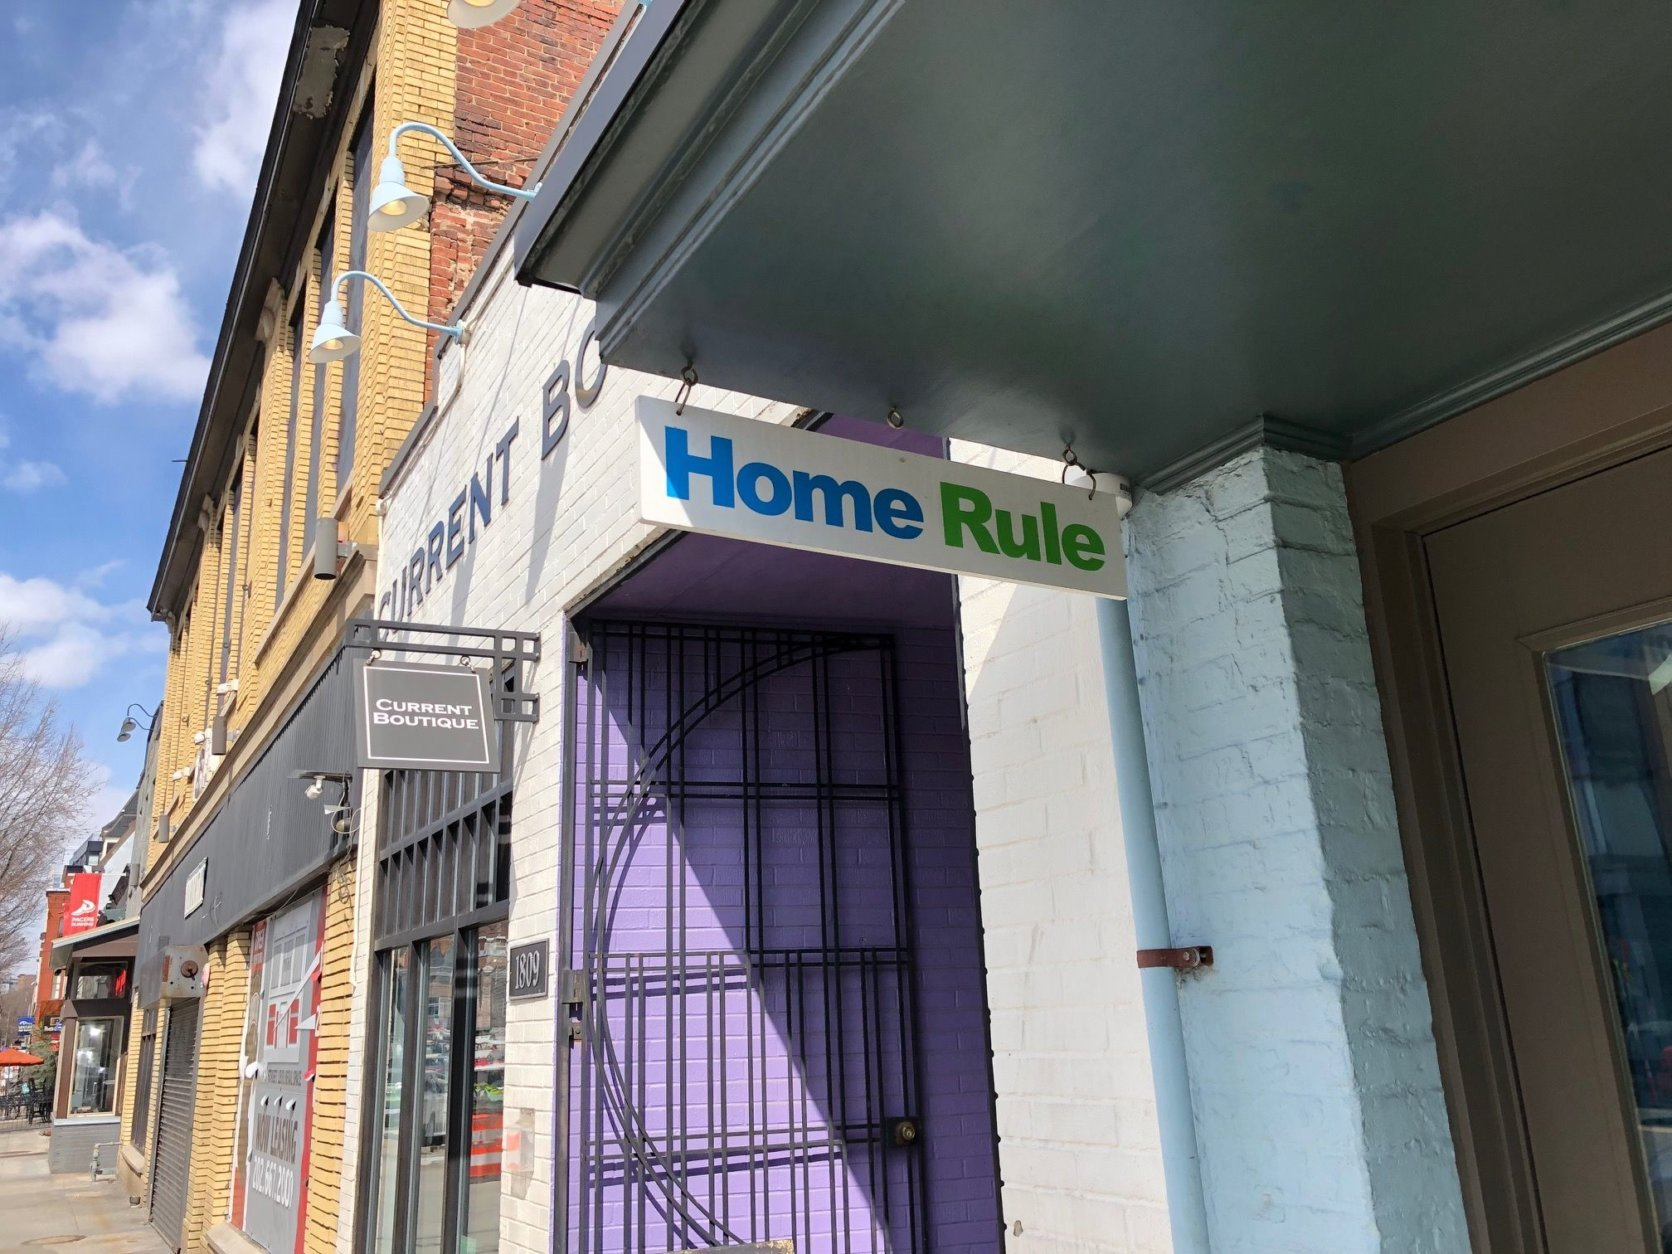 Home Rule opened in 1999 on 14th Street— several years before the neighborhood's revitalization. At the end of March, the home goods shop is closing. (WTOP/Rachel Nania)